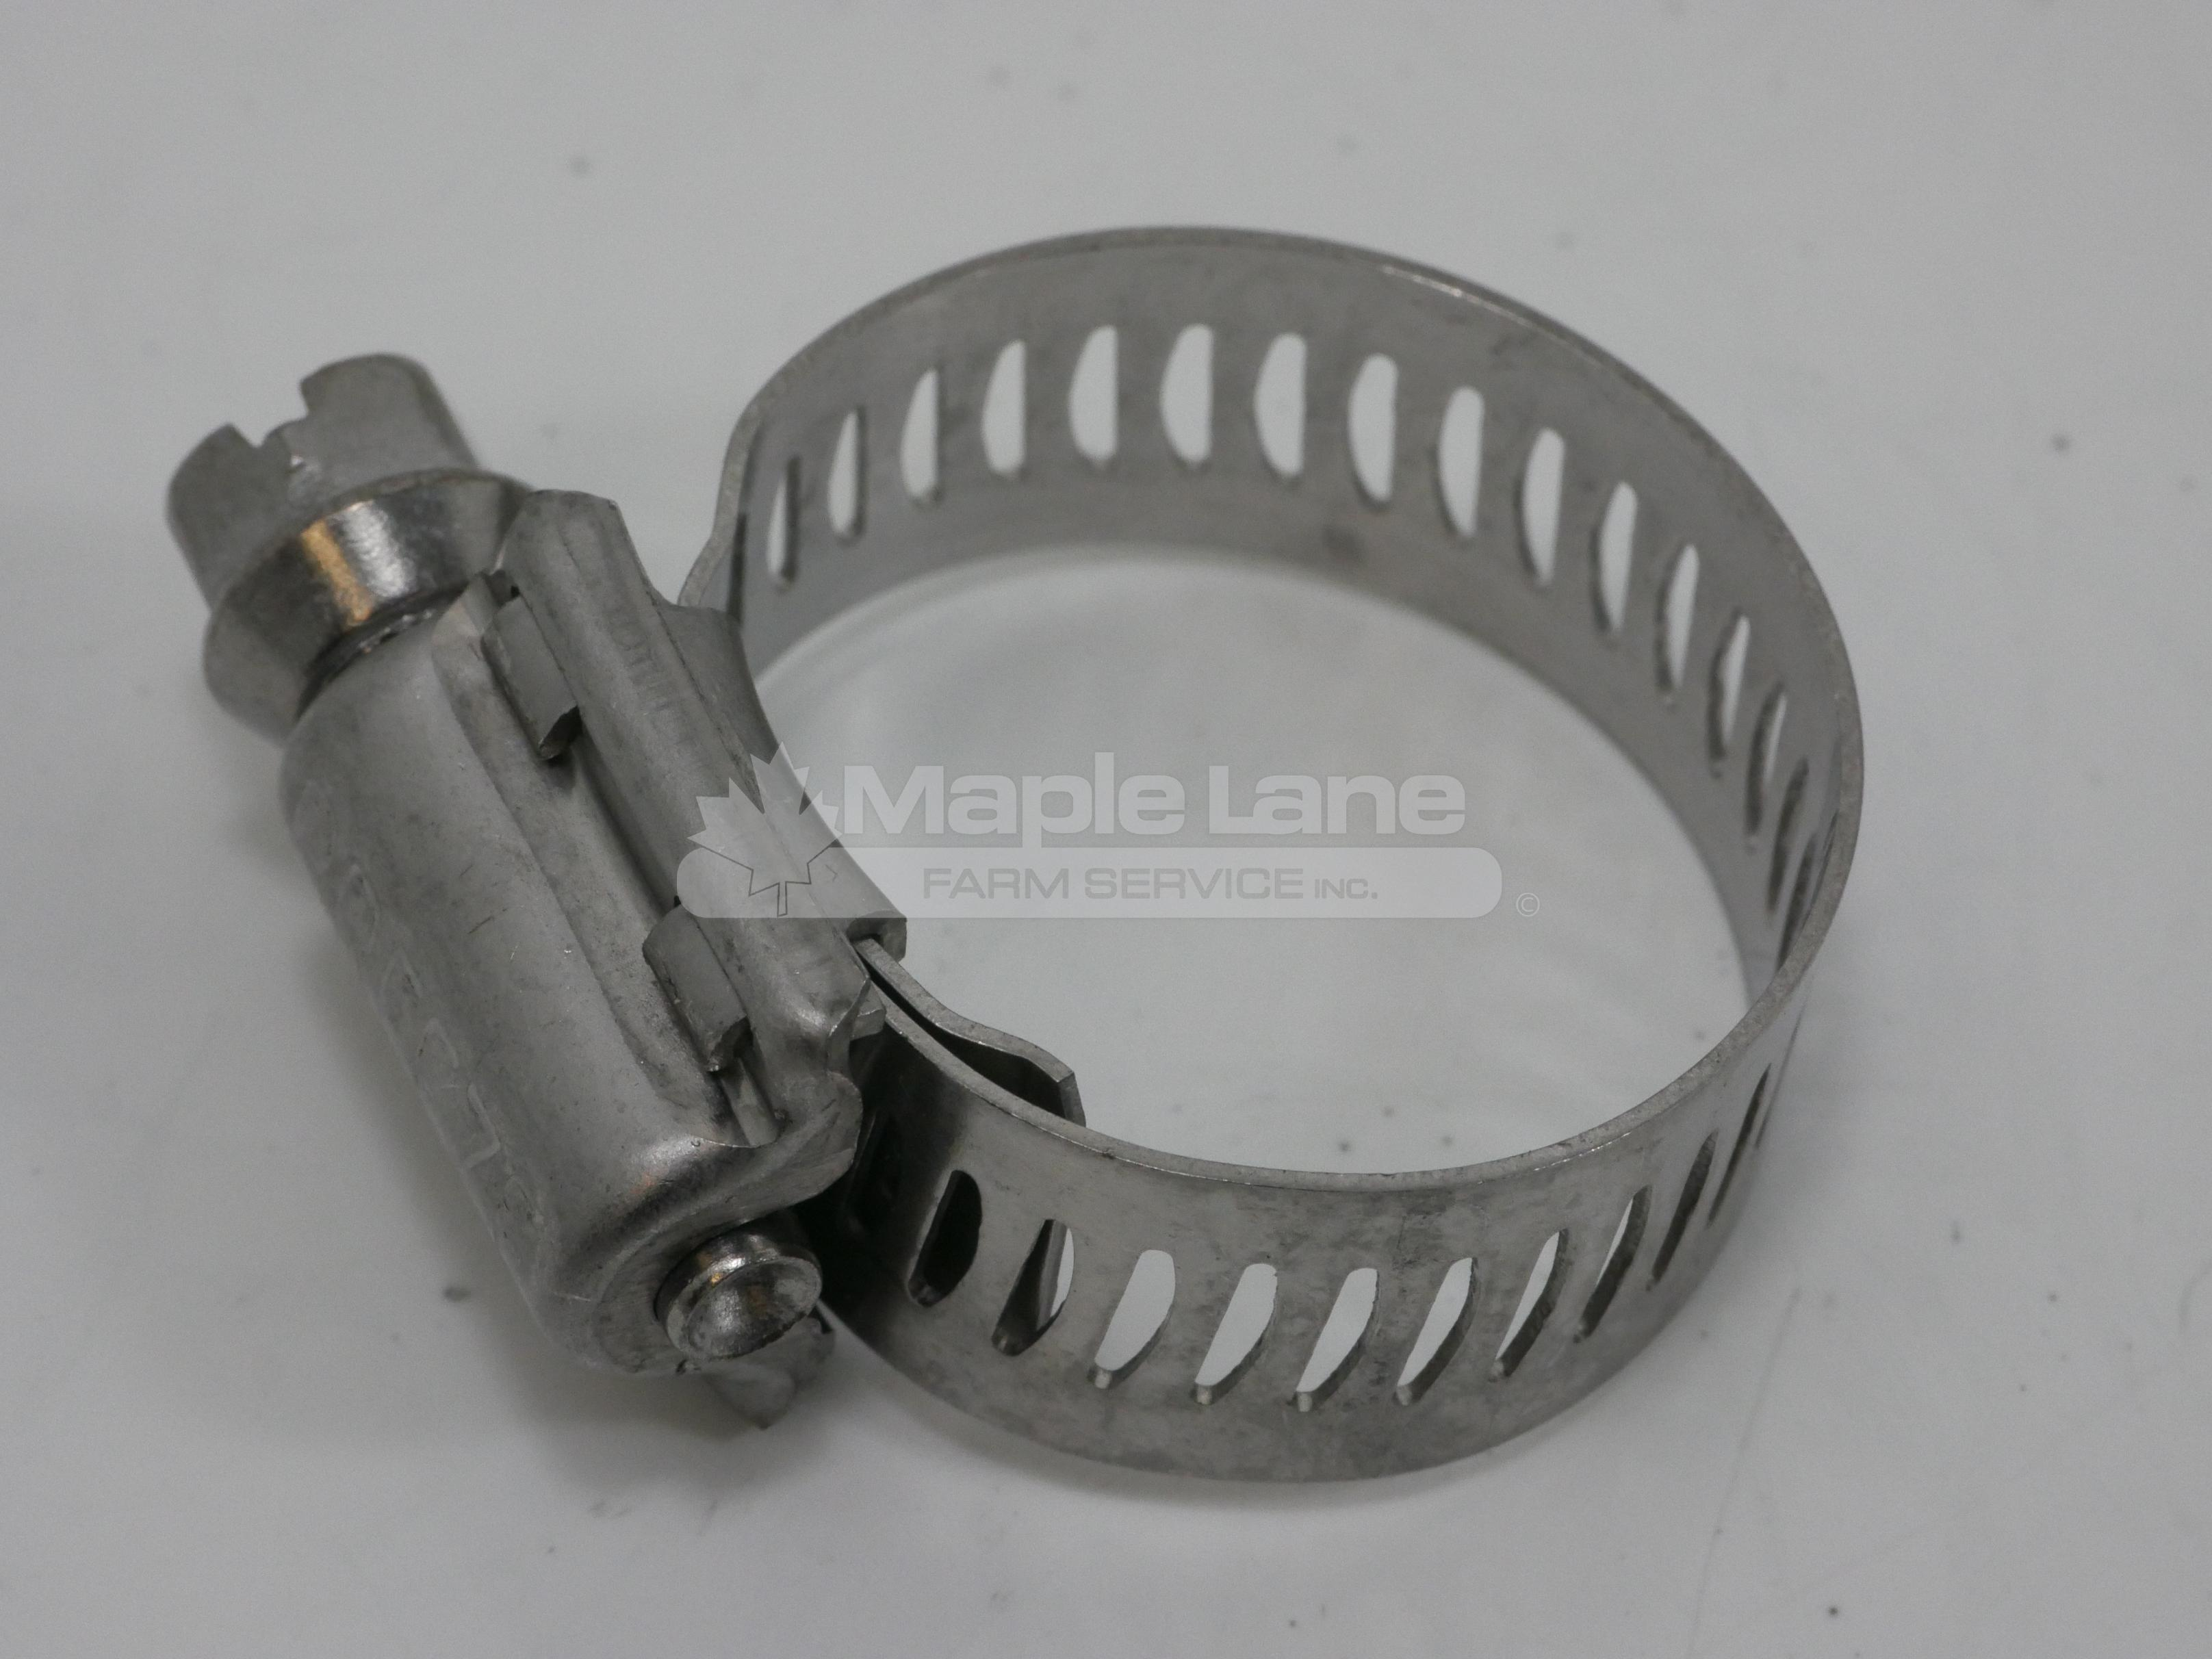 AG561228 Hose Clamp